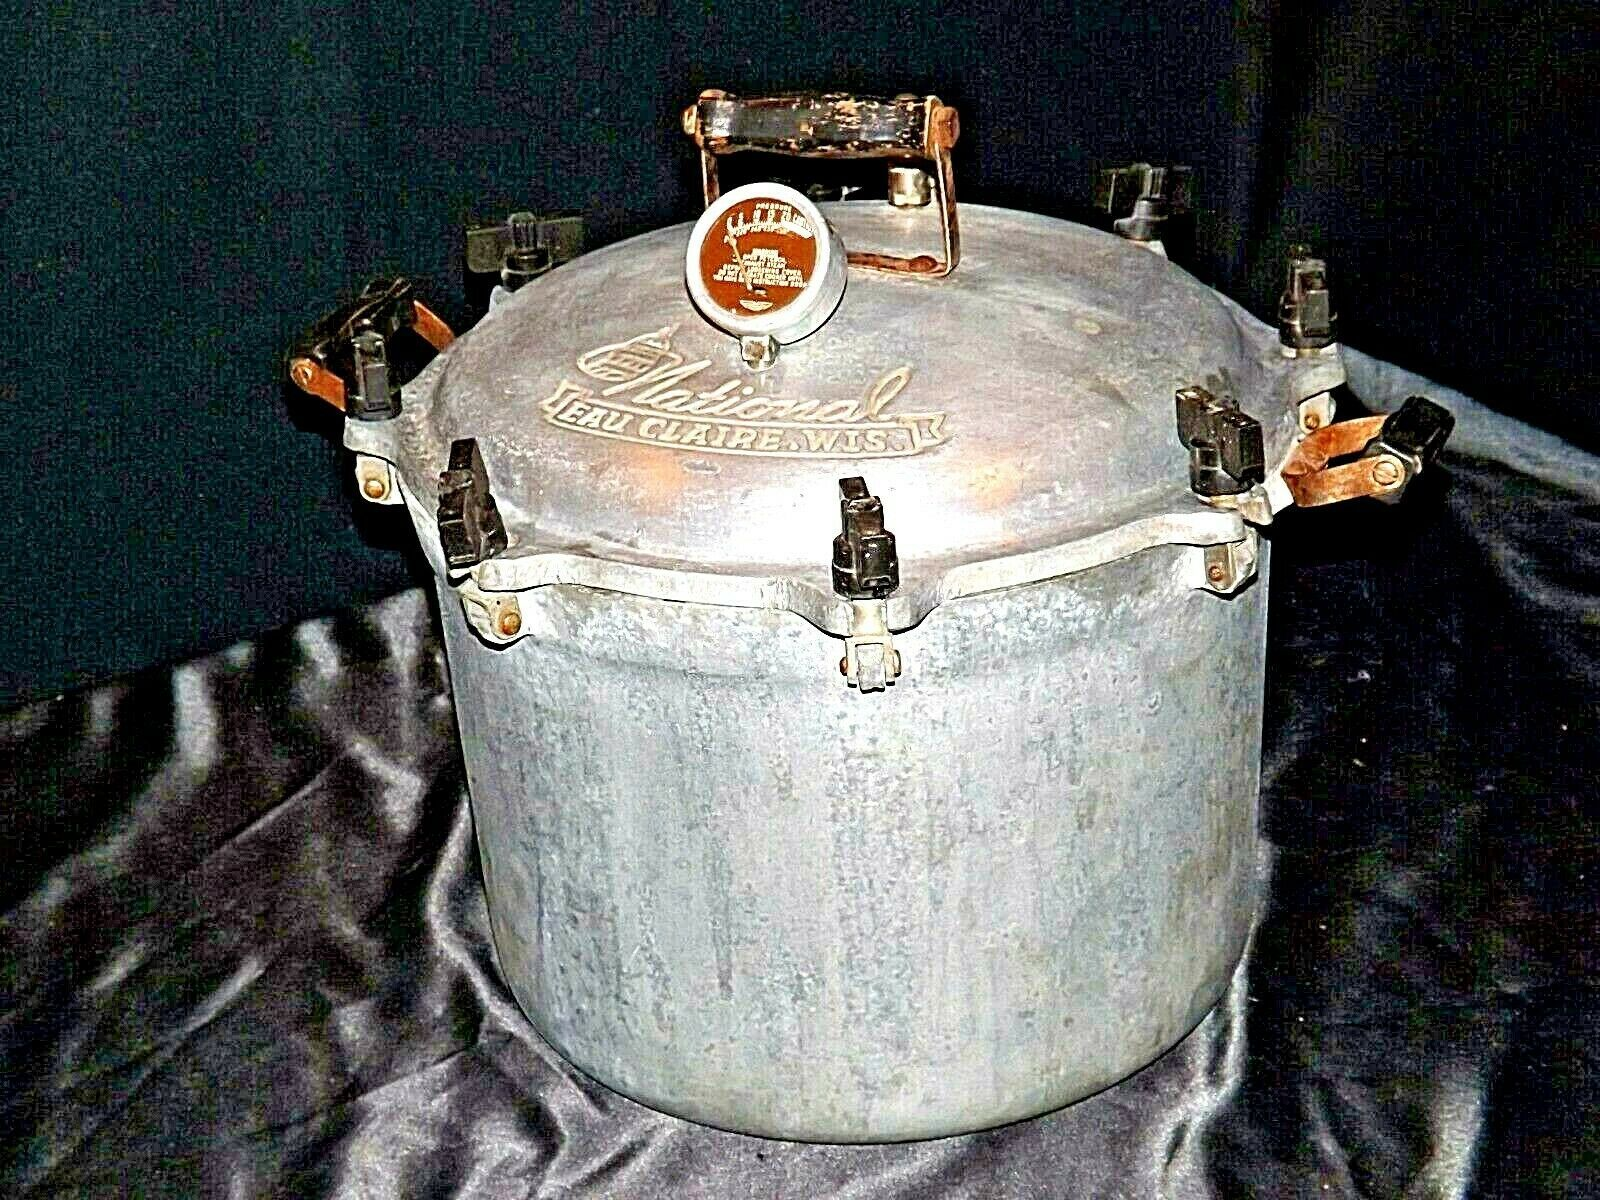 C 21 National Pressure Cooker  AA19-1522 Antique